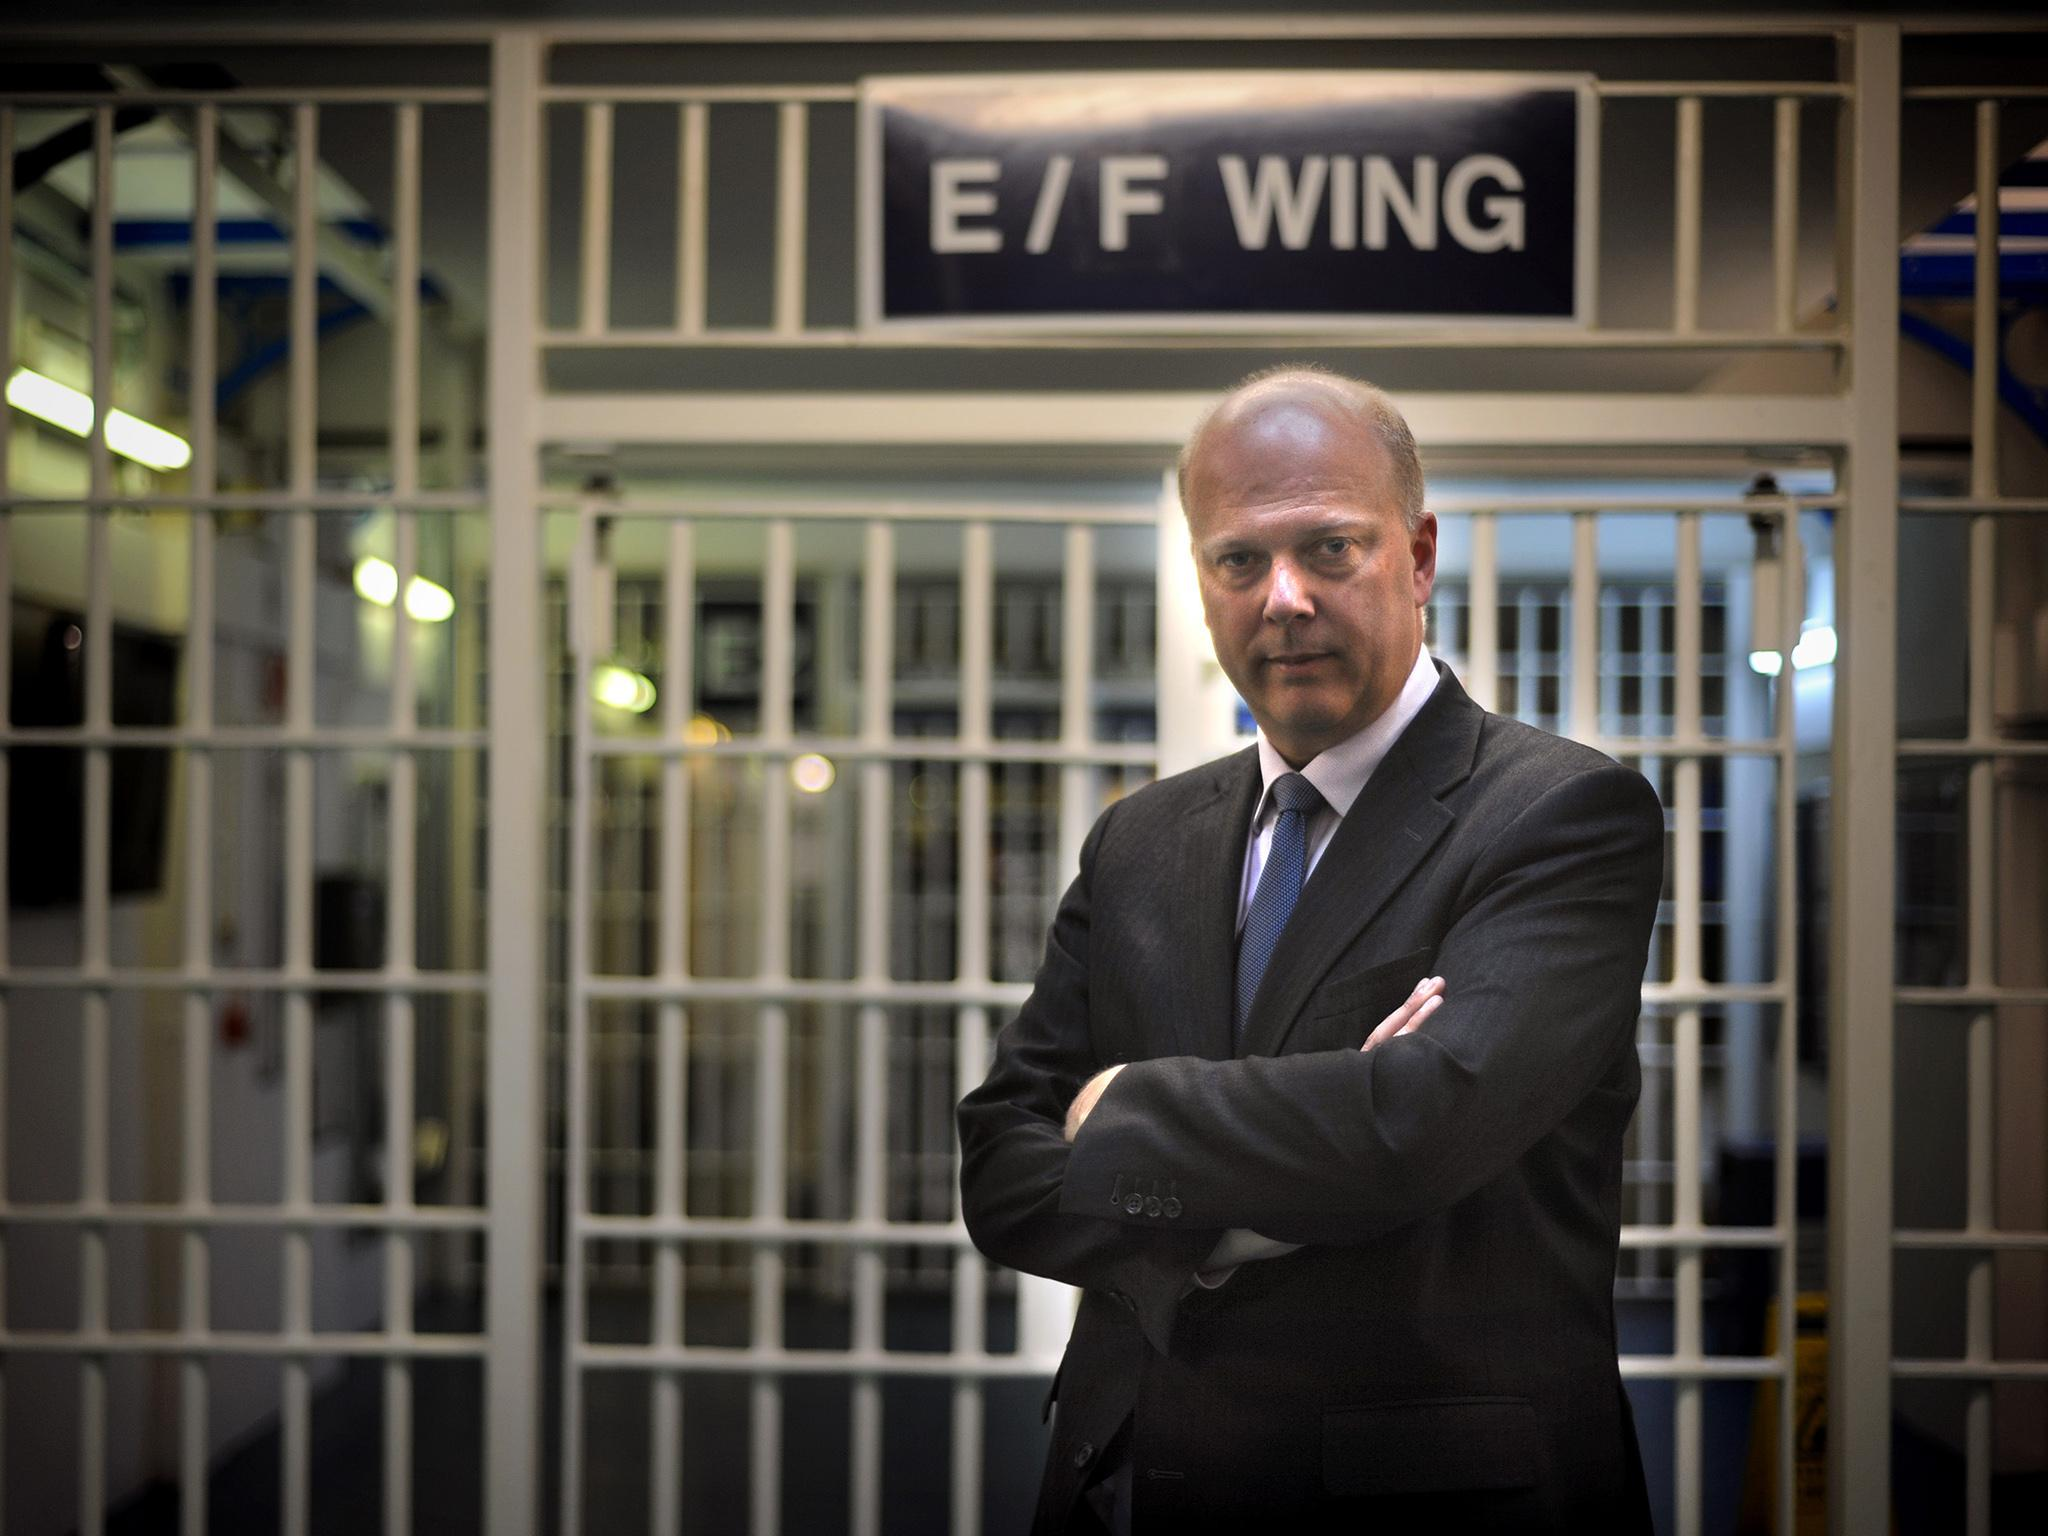 Probation services are failing thanks – once again – to none other than Chris Grayling